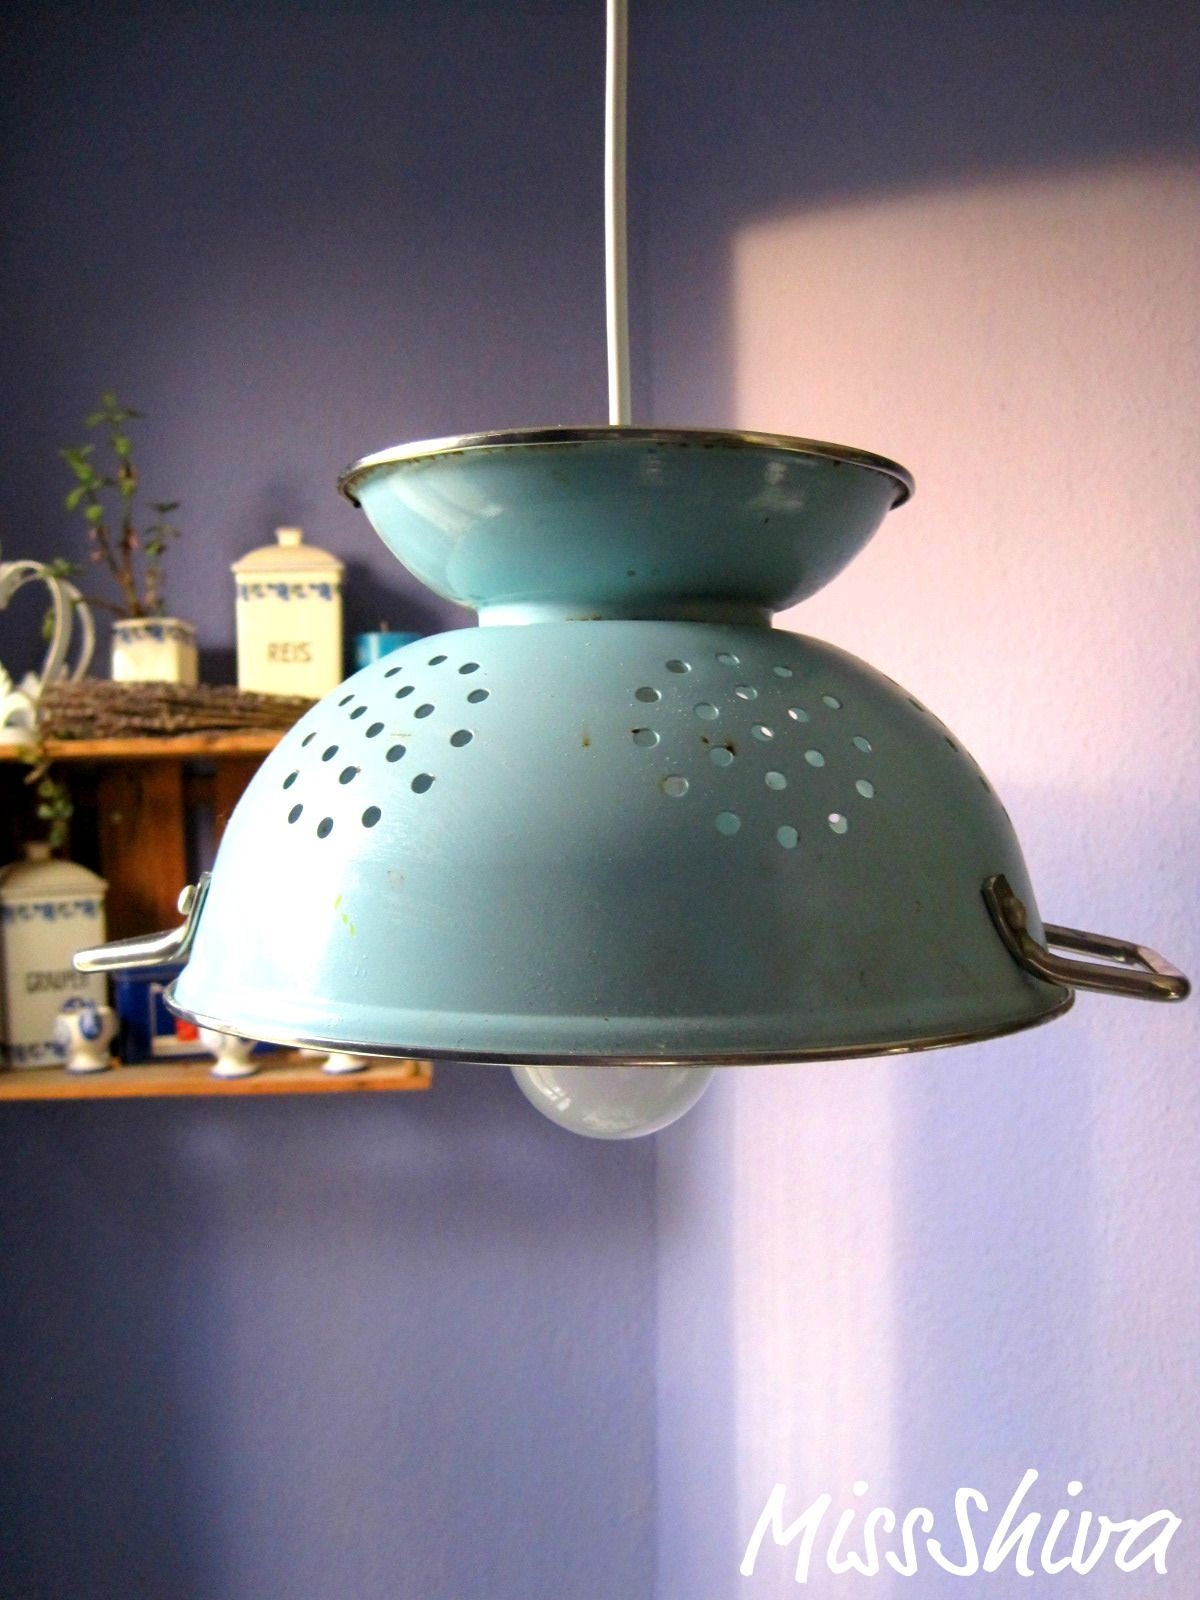 Diy Deckenlampe Diy Colander Lamp Doing This With Old Copper One Creatief